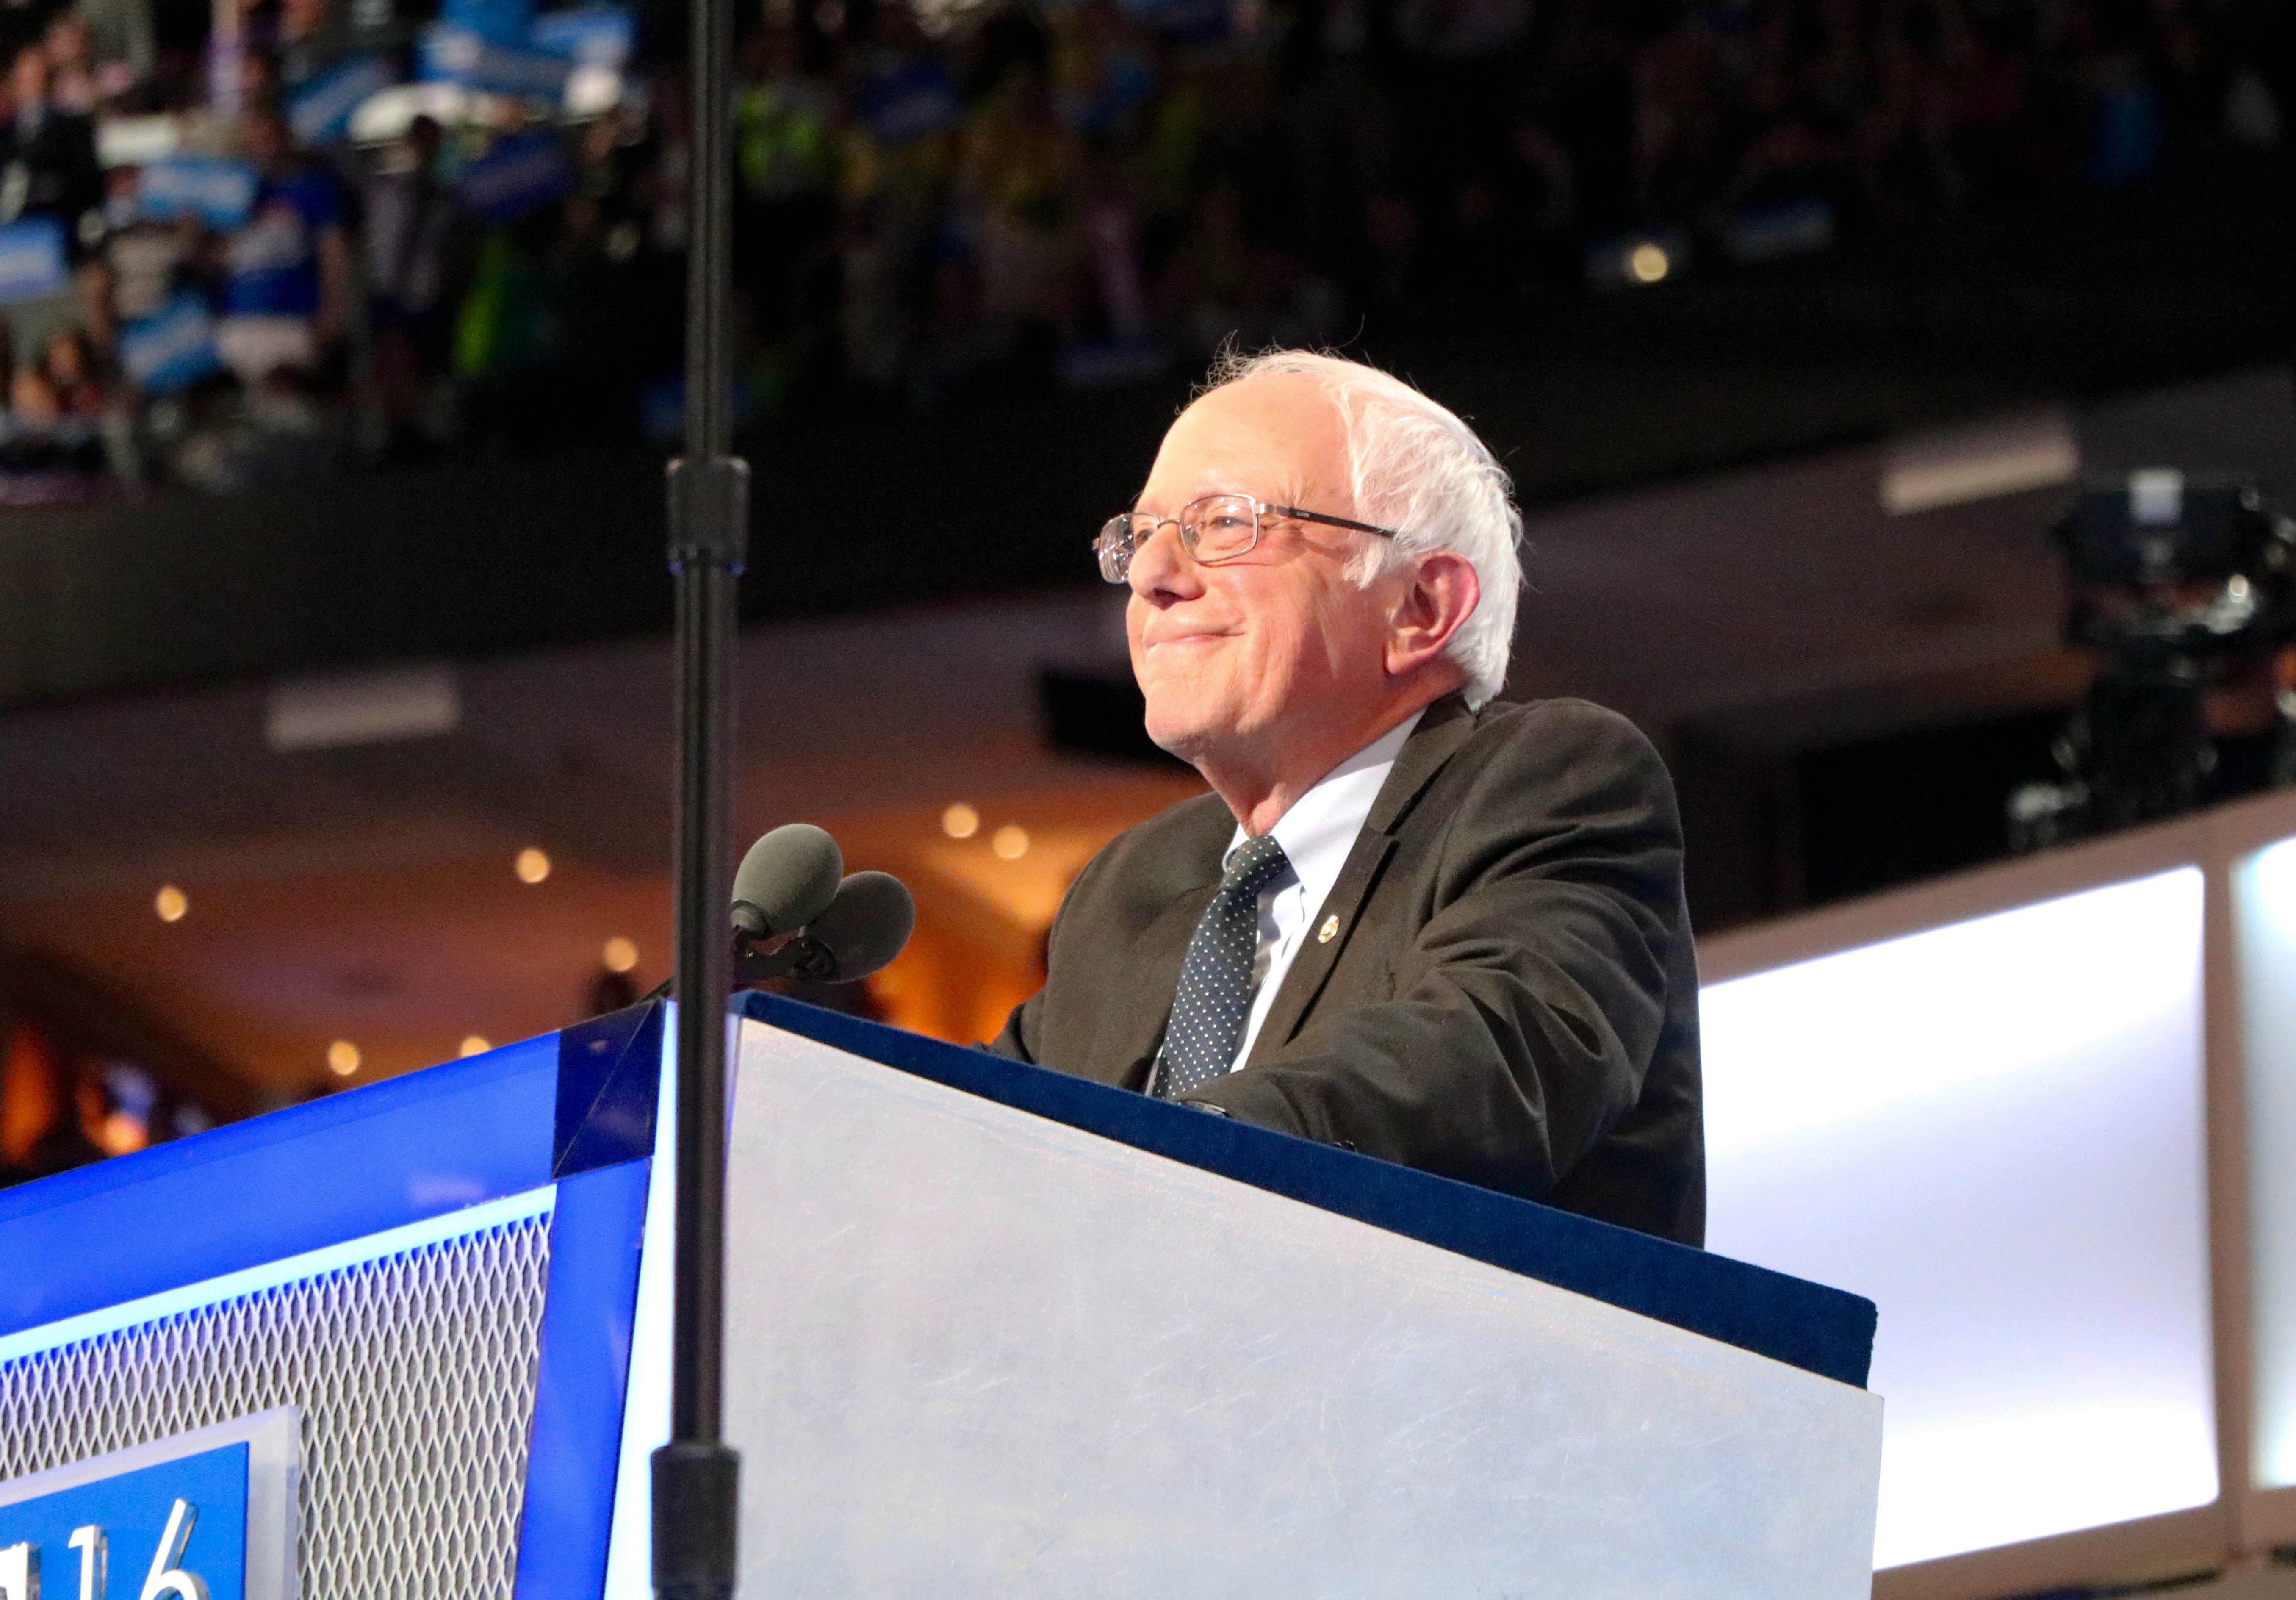 Former Democratic presidential candidate Bernie Sanders speaks Monday at the Democratic National Convention. (Evan Garcia / Chicago Tonight)